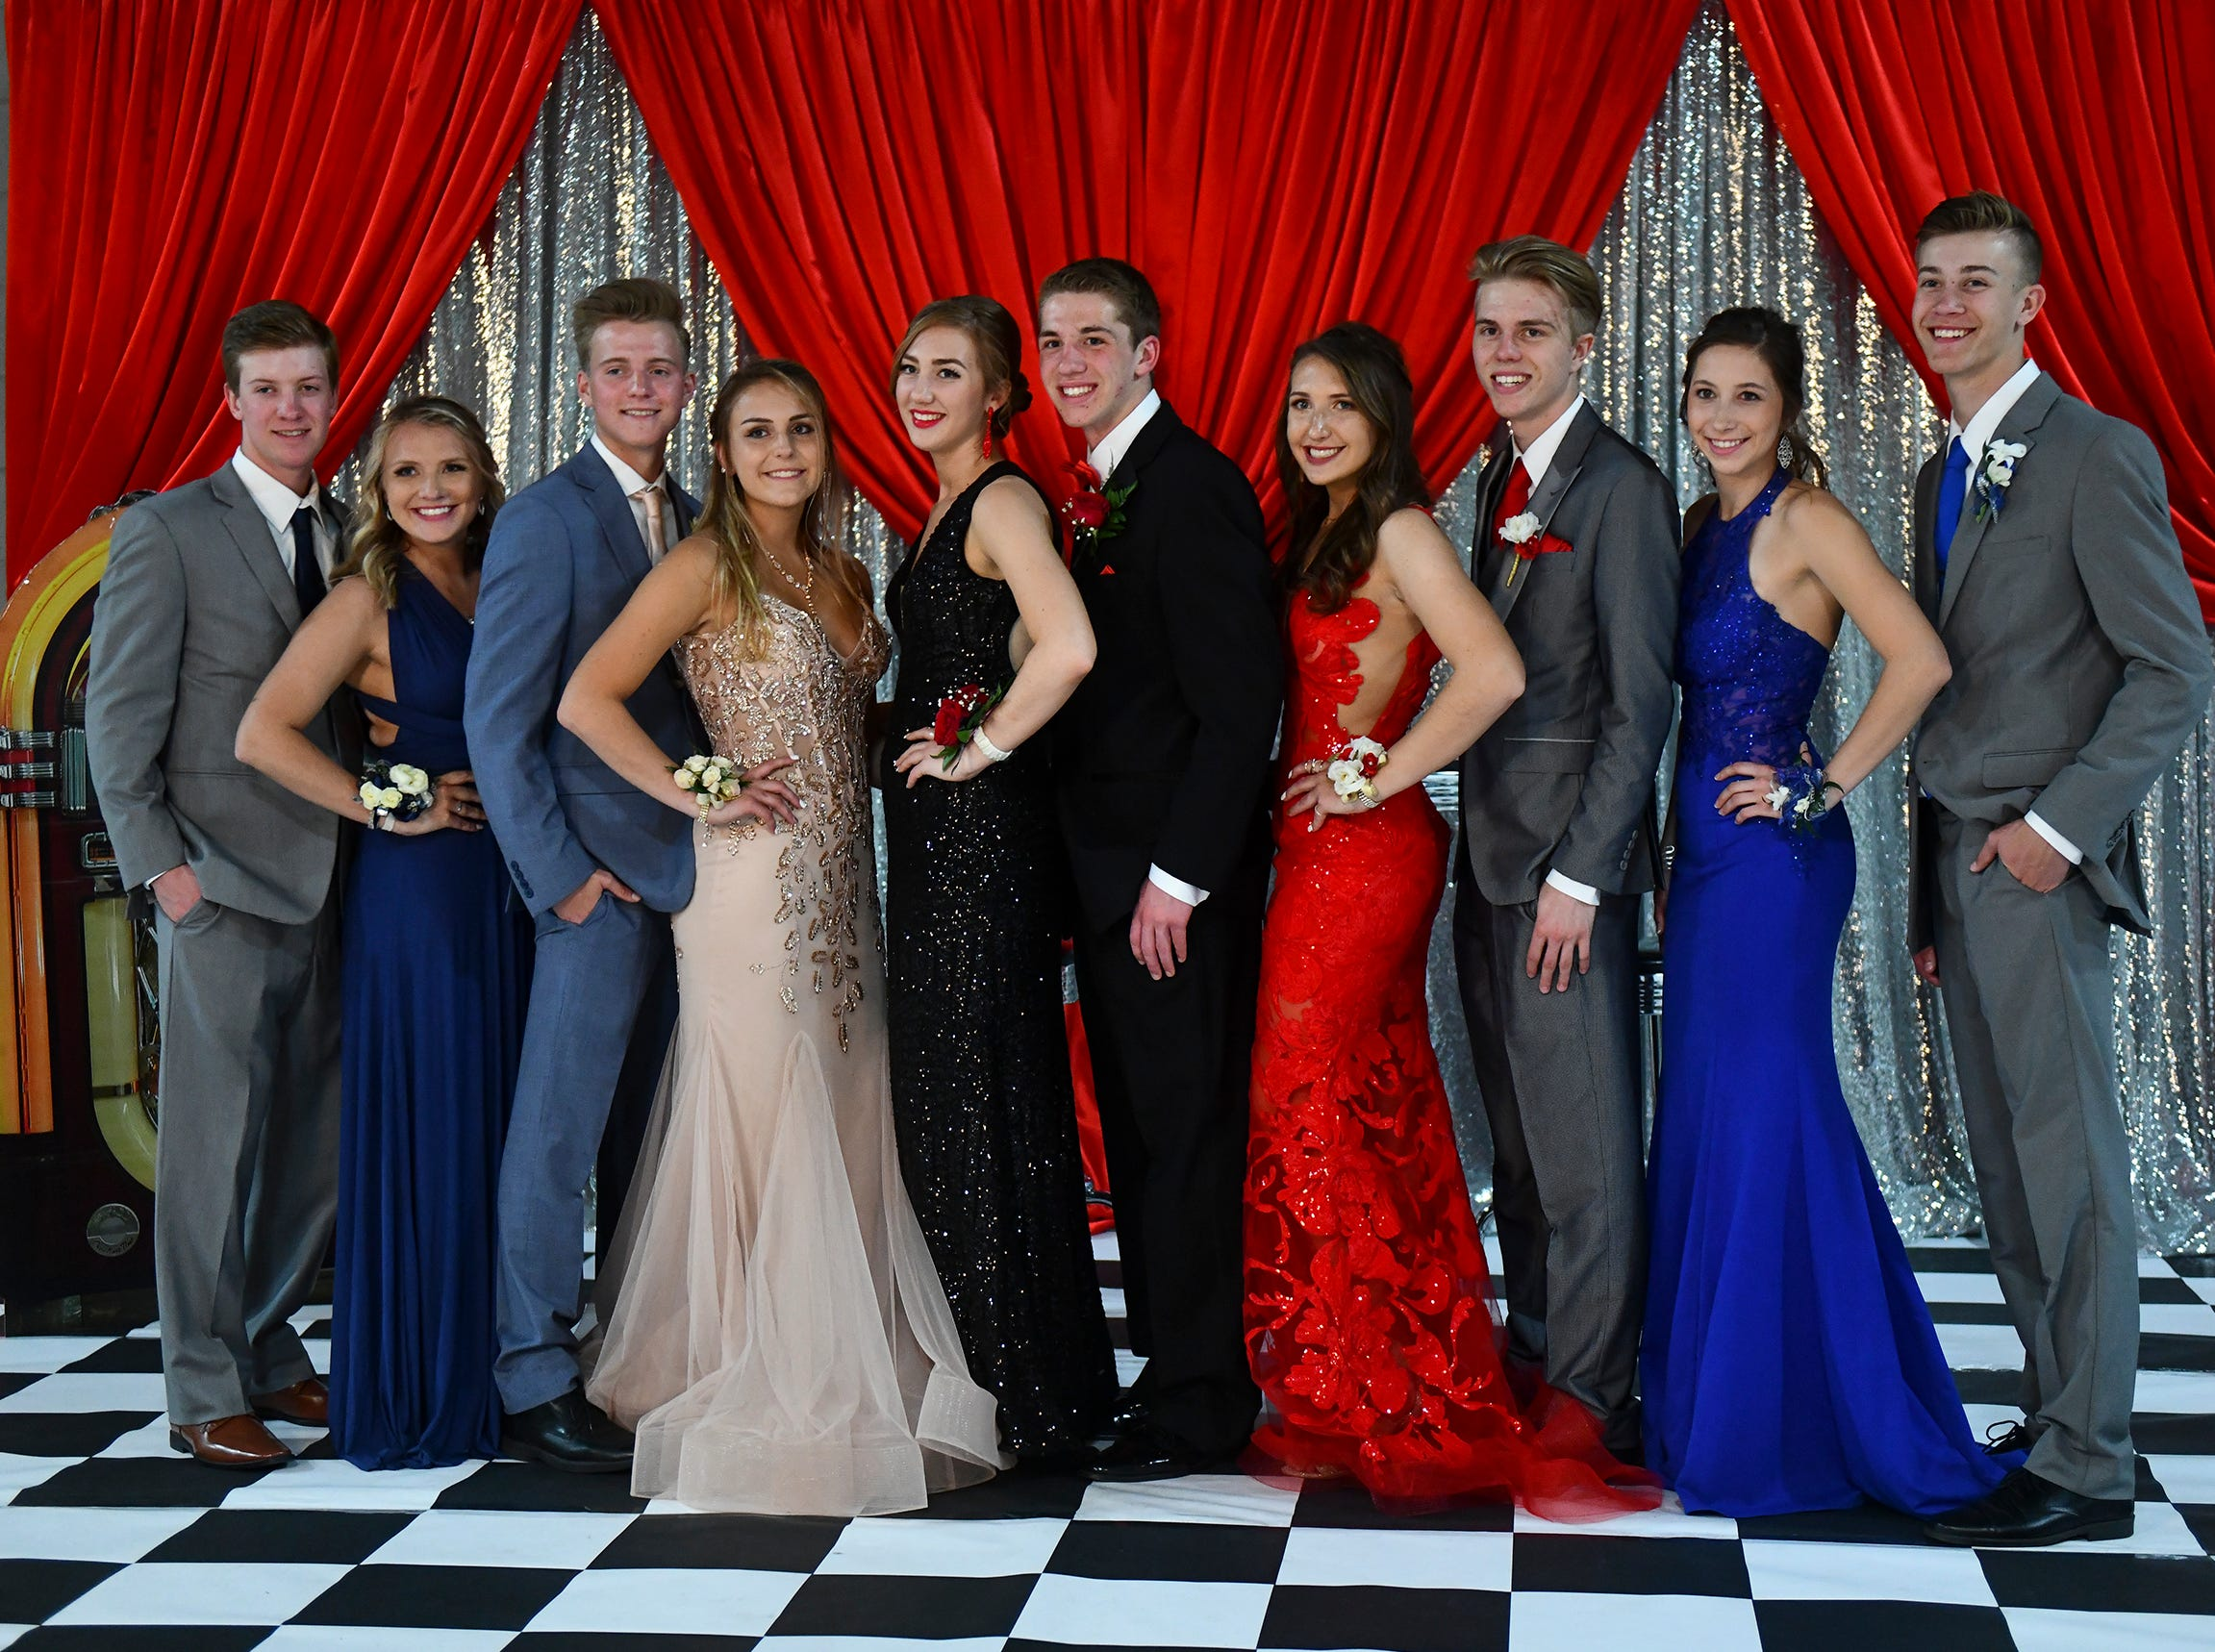 Friends gather for a photograph during Sartell High School prom Saturday, May 4, in St. Cloud.